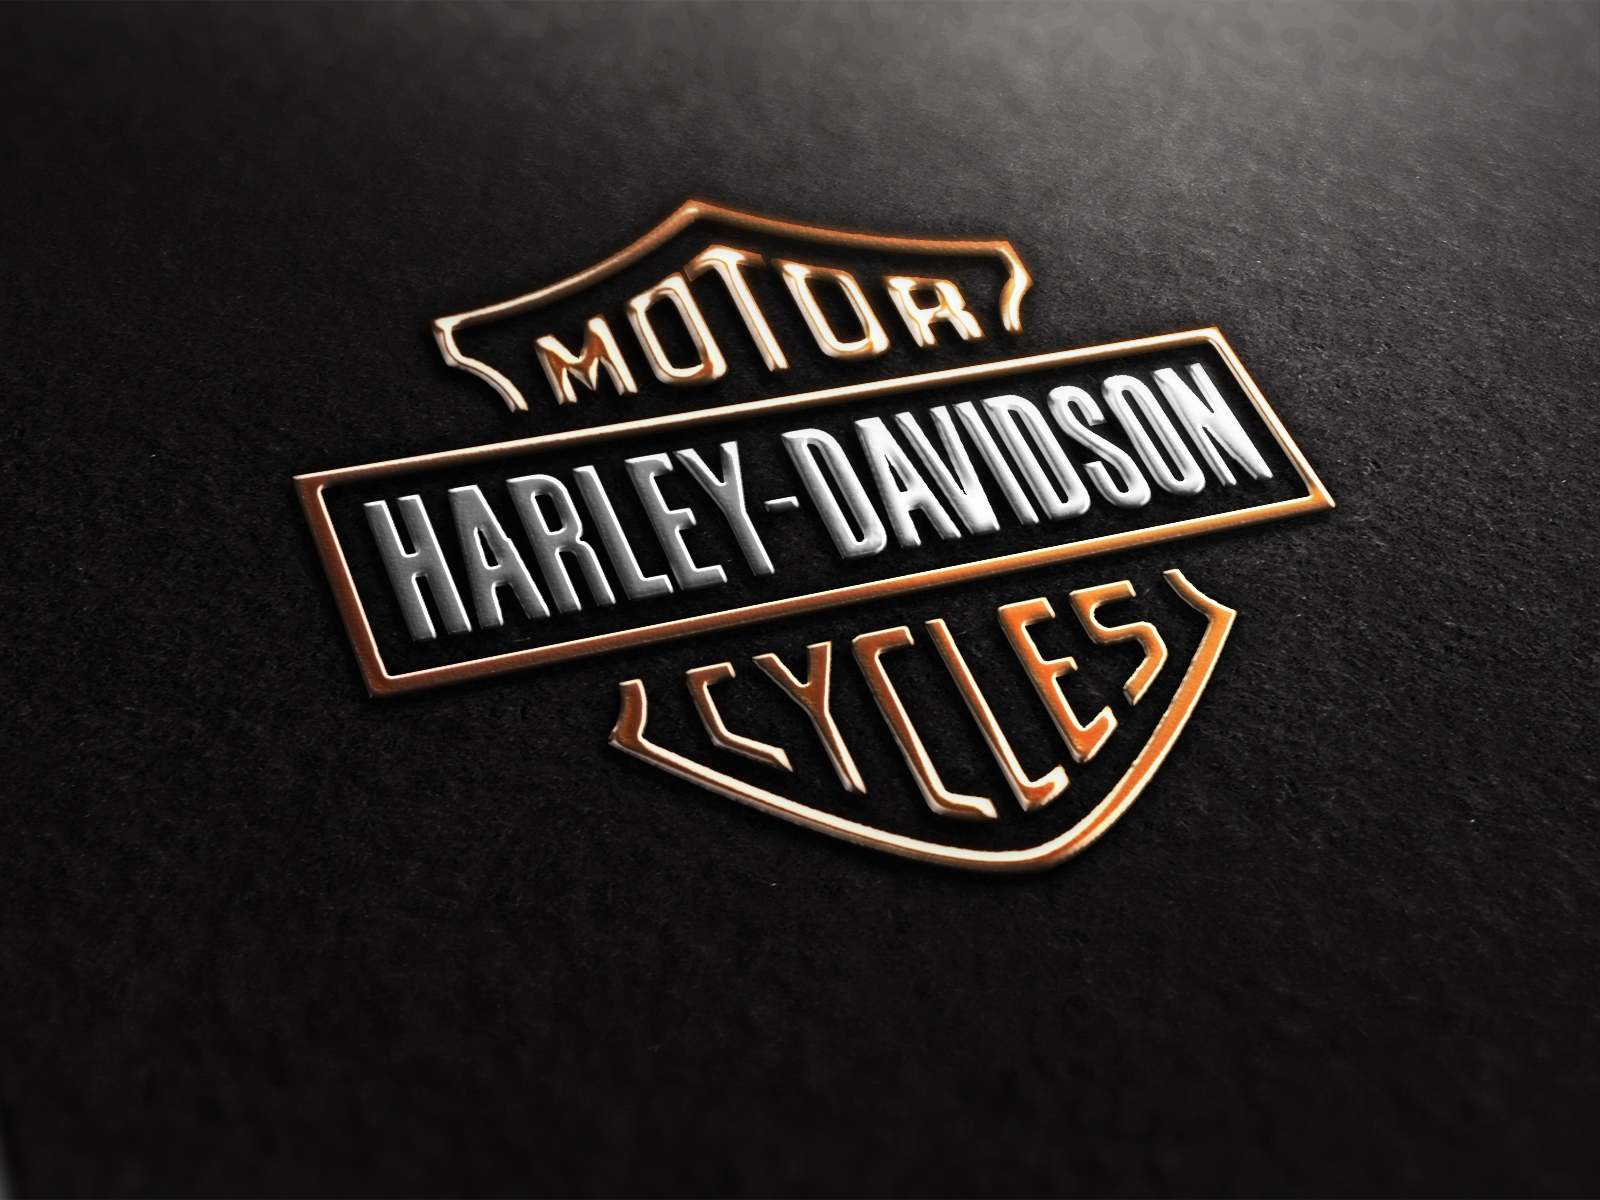 harley davidson wallpaper 16894